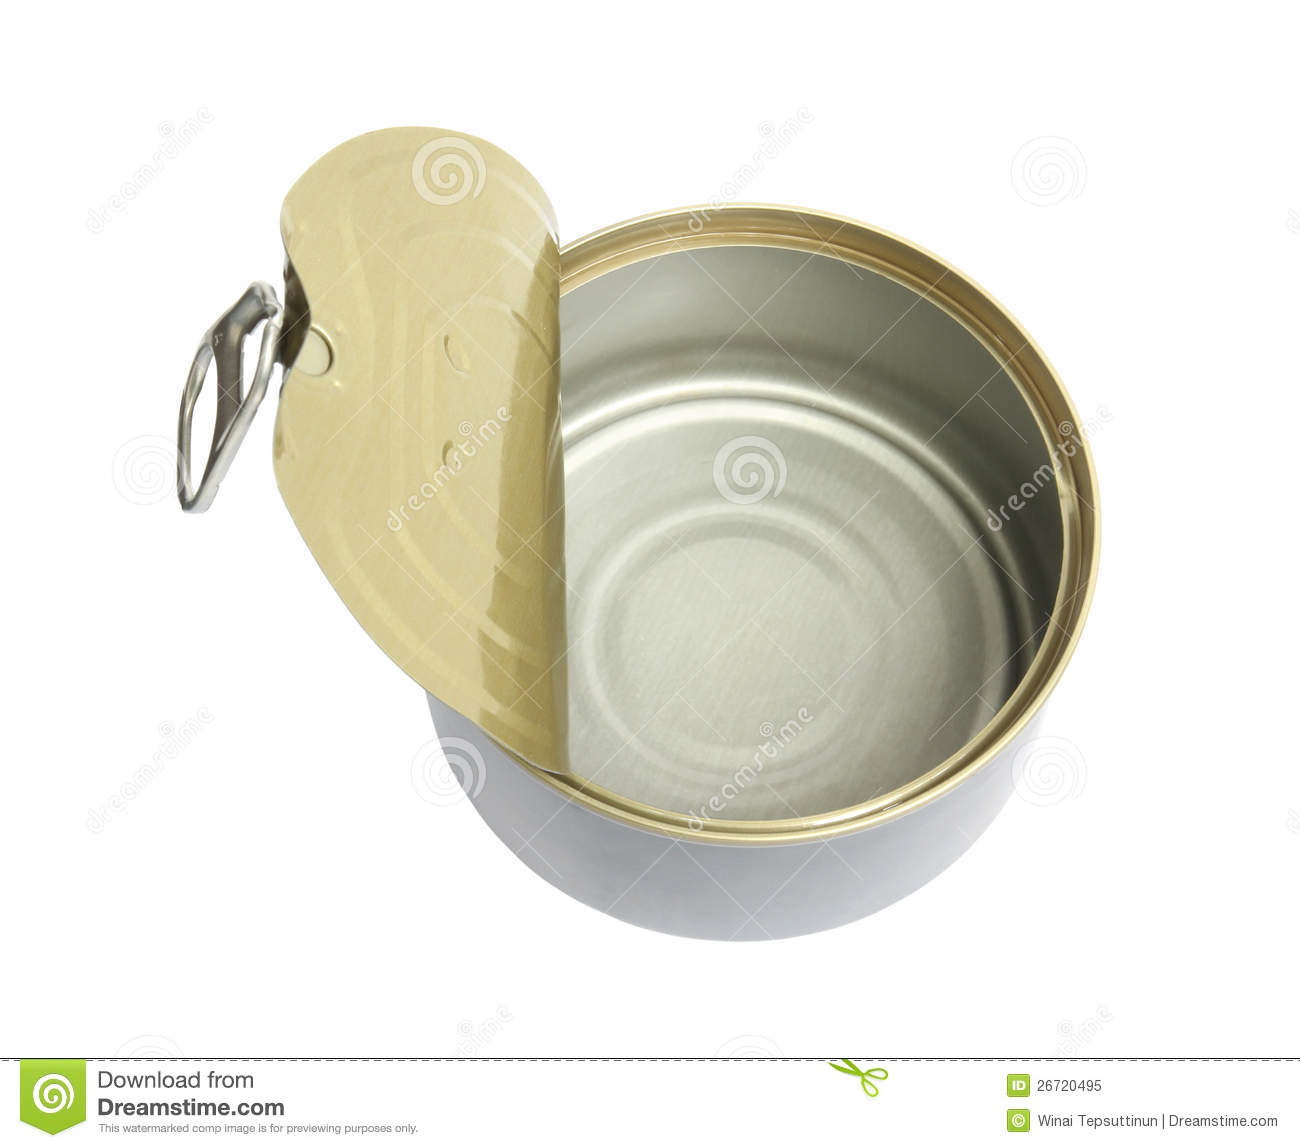 Empty can royalty free stock photo image 26720495 Empty sardine cans